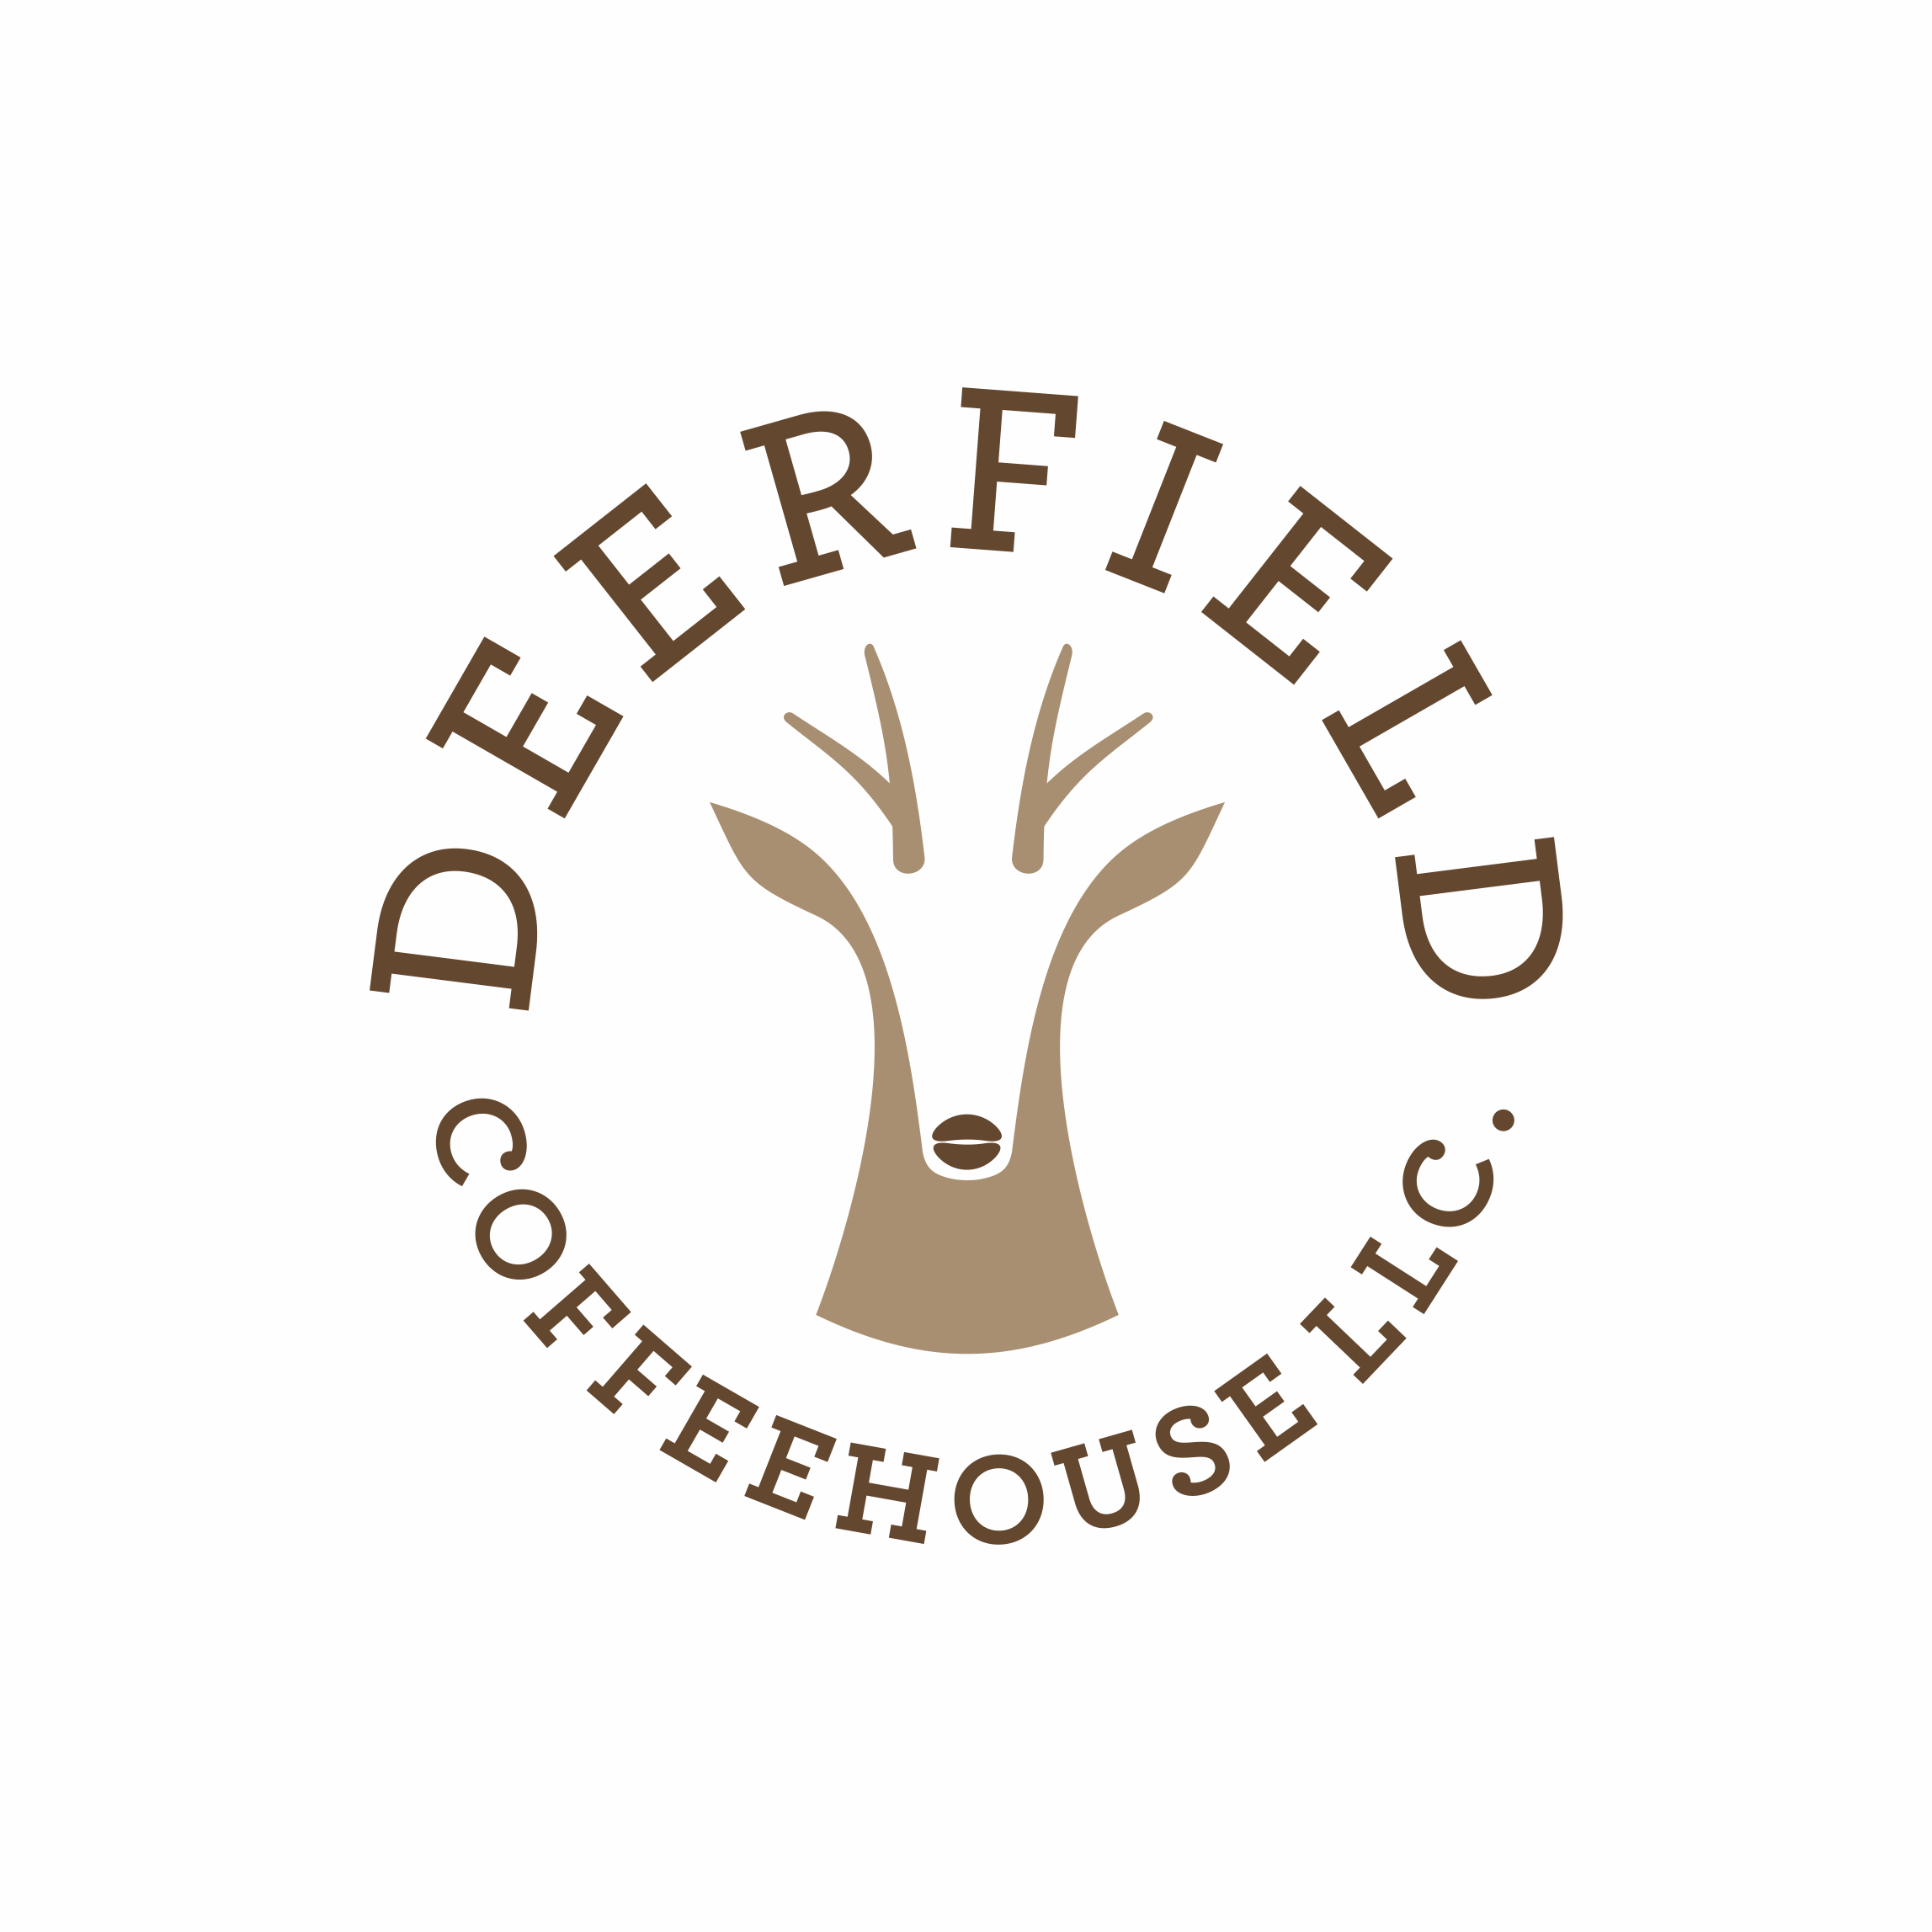 Design a logo that brings Farmers and Hipsters together over Coffee!